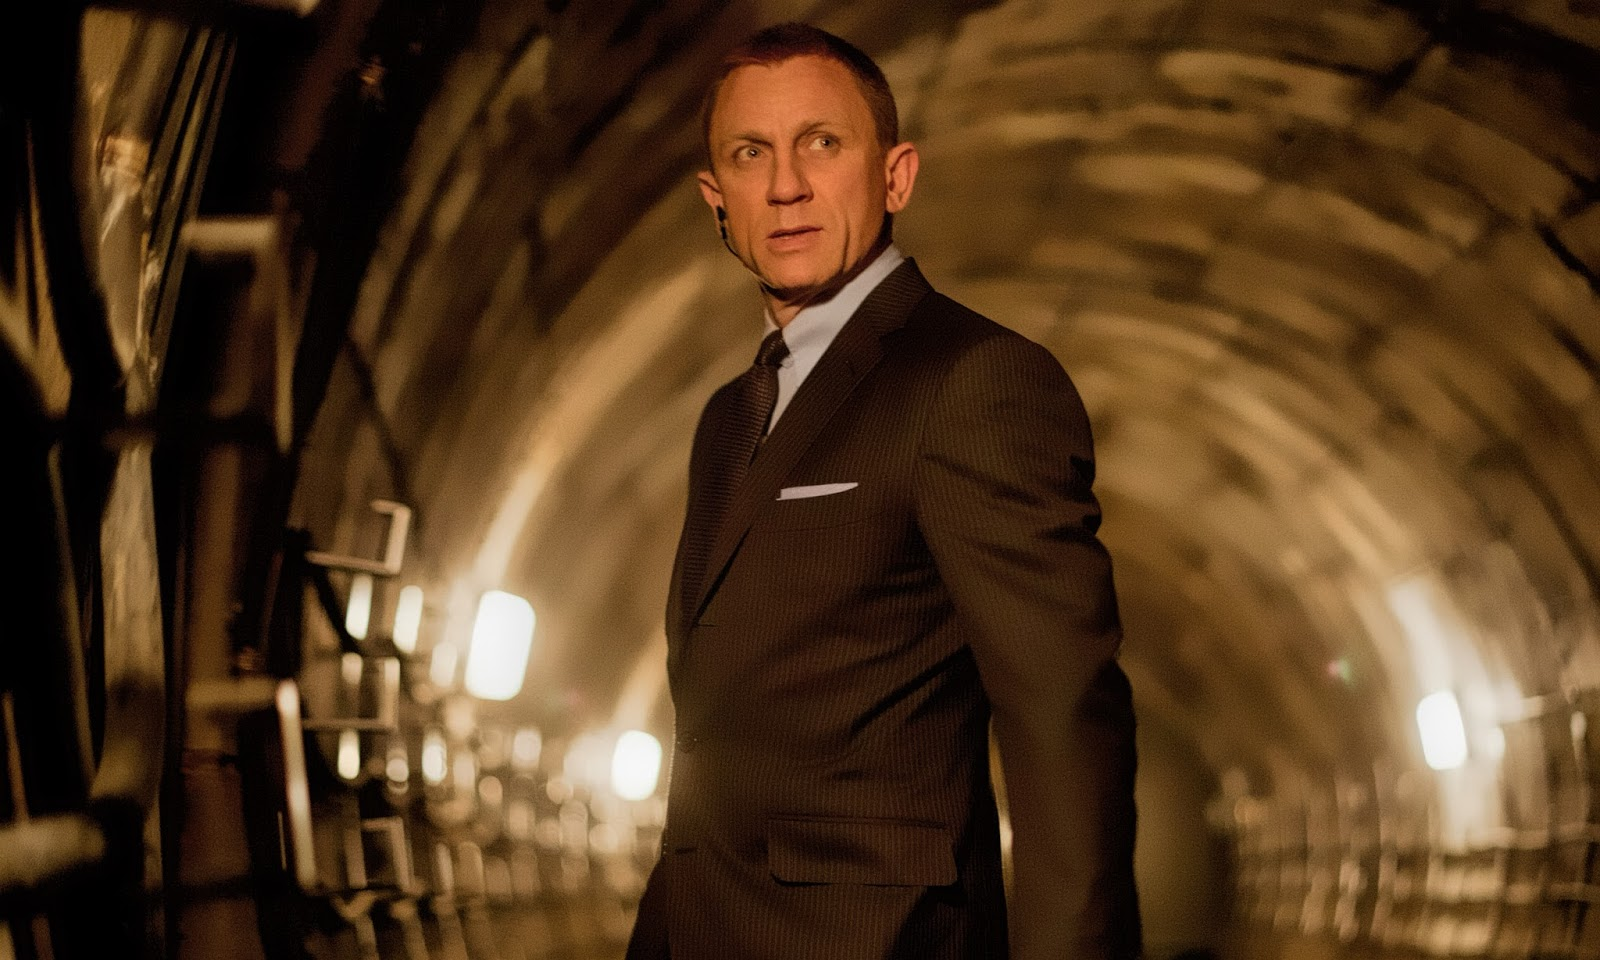 spectre james bond trailer cast and hd wallpapers hd. Black Bedroom Furniture Sets. Home Design Ideas